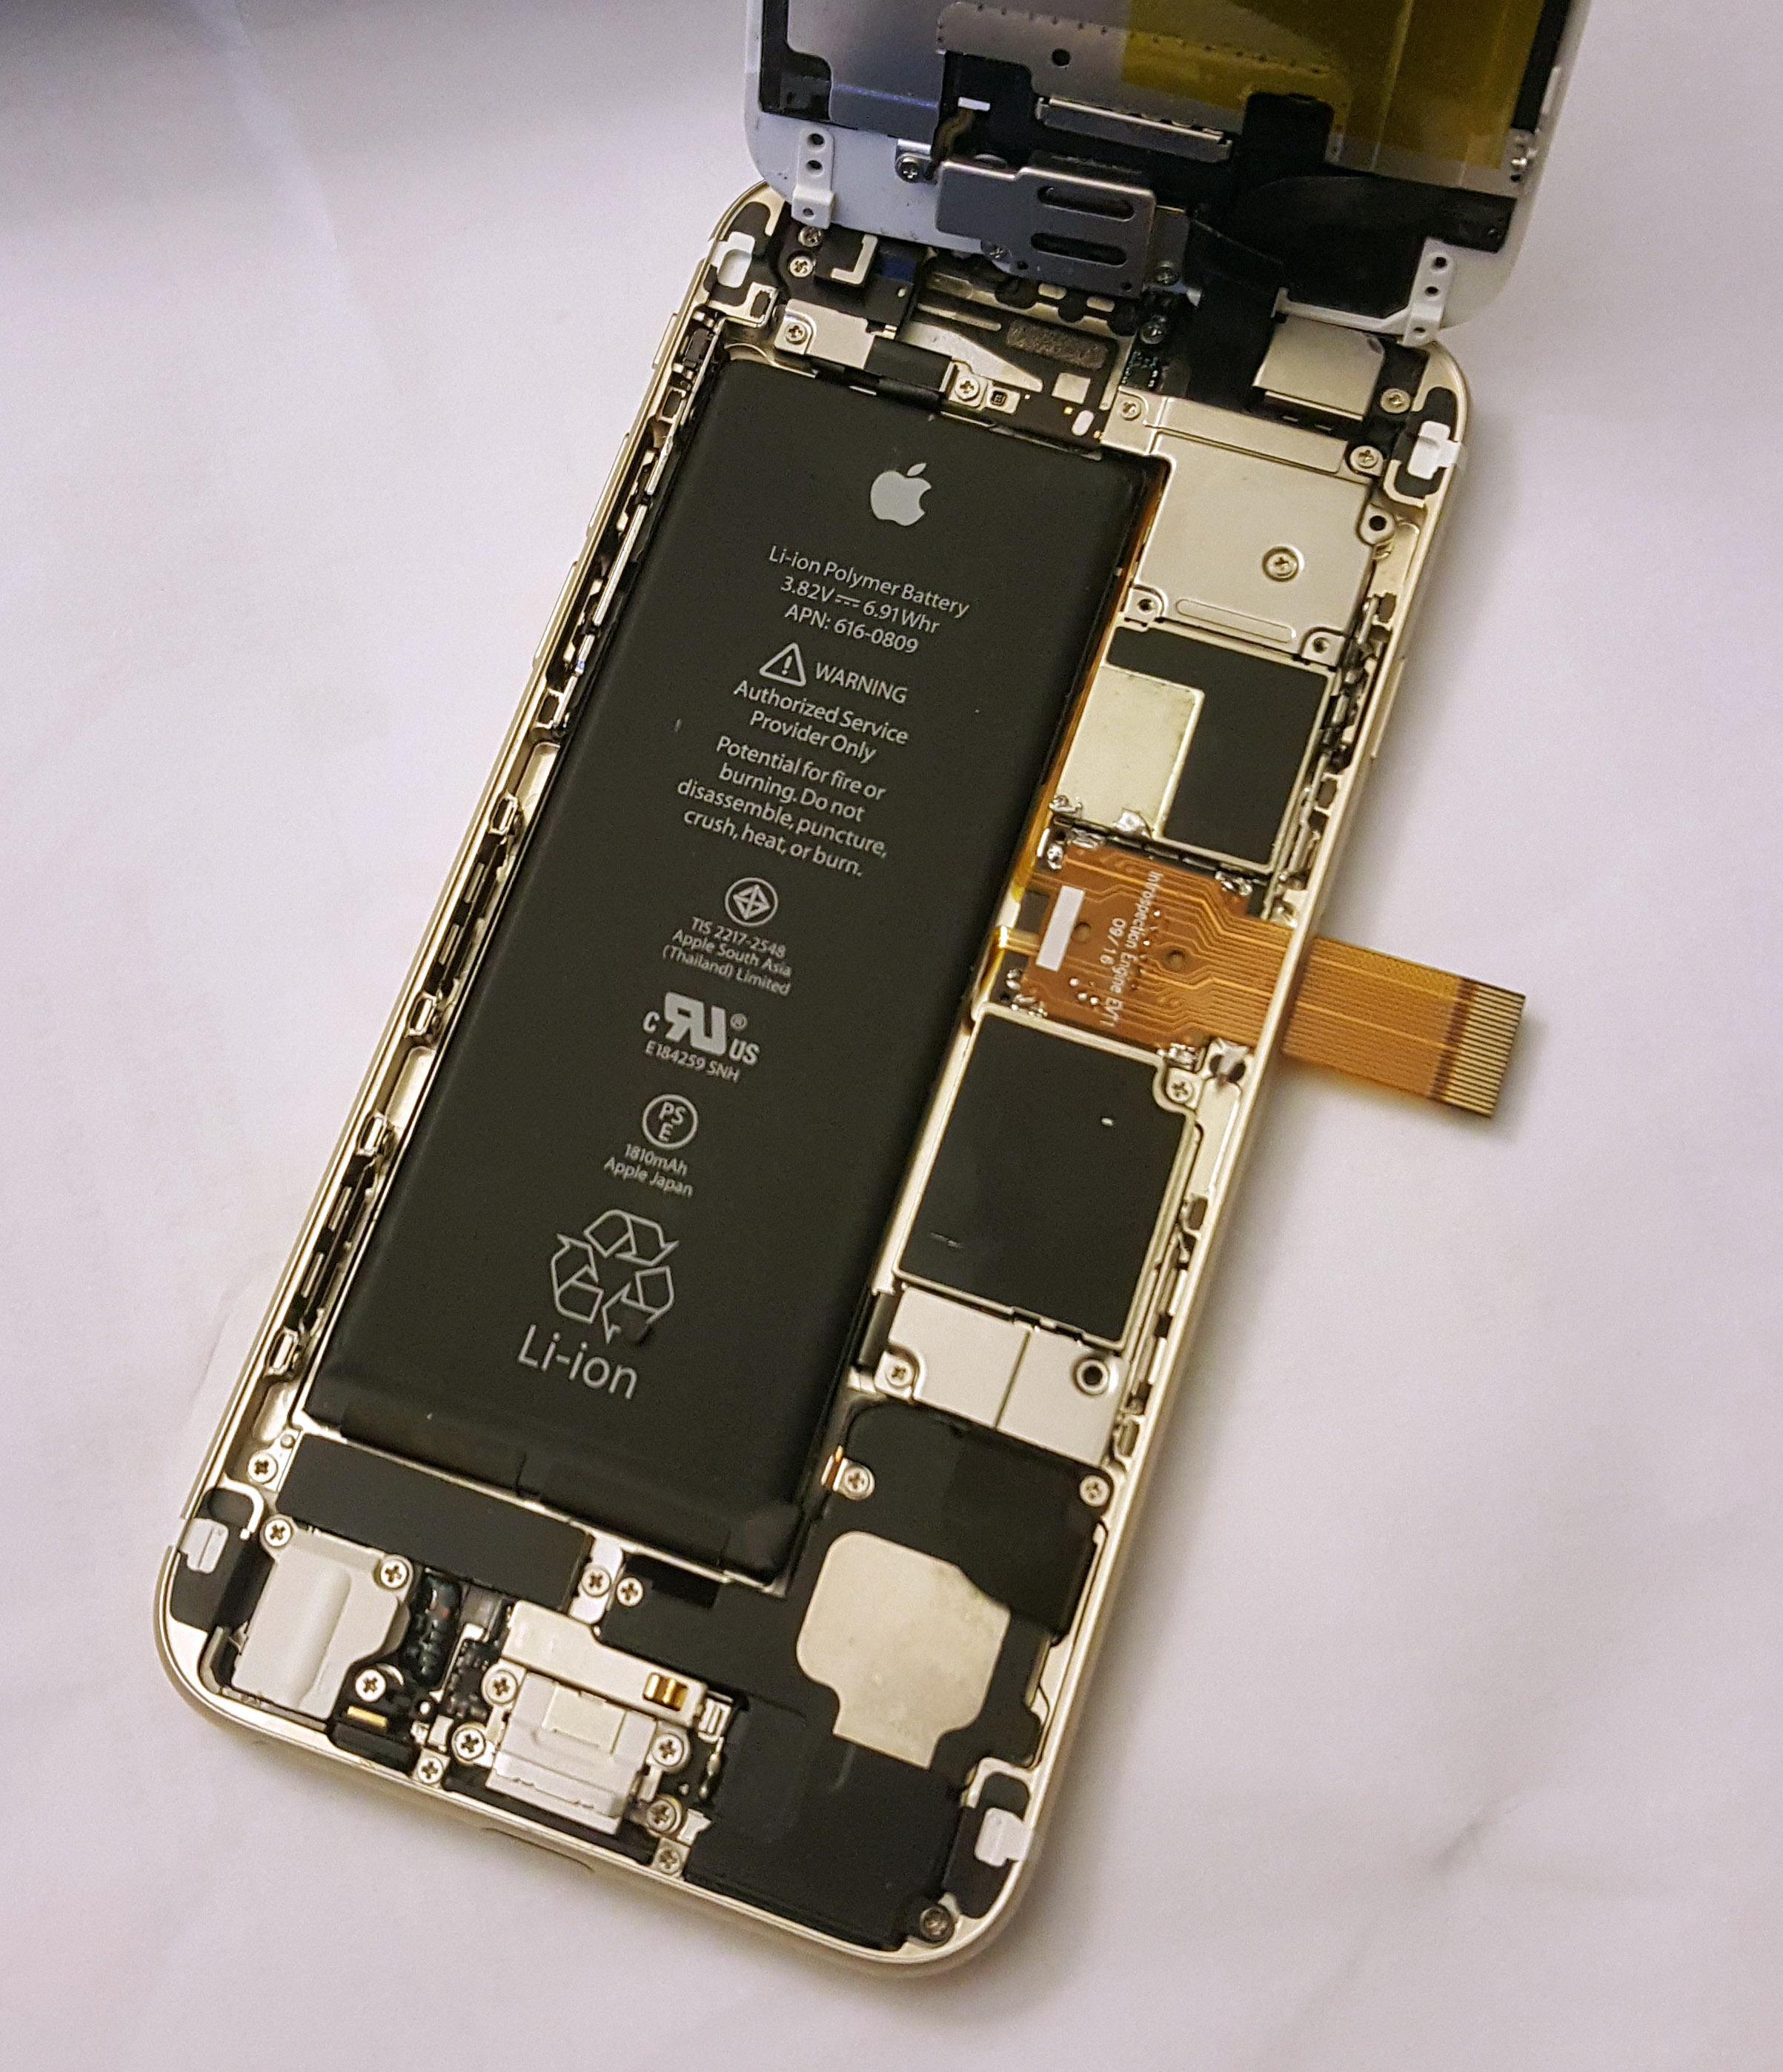 Against The Law Countering Lawful Abuses Of Digital Surveillance No Disassemble Short Circuit See More 3 Theguardian Com Figure 15 Tap Board As Installed On An Iphone6 Motherboard Upper Front View Lower Back